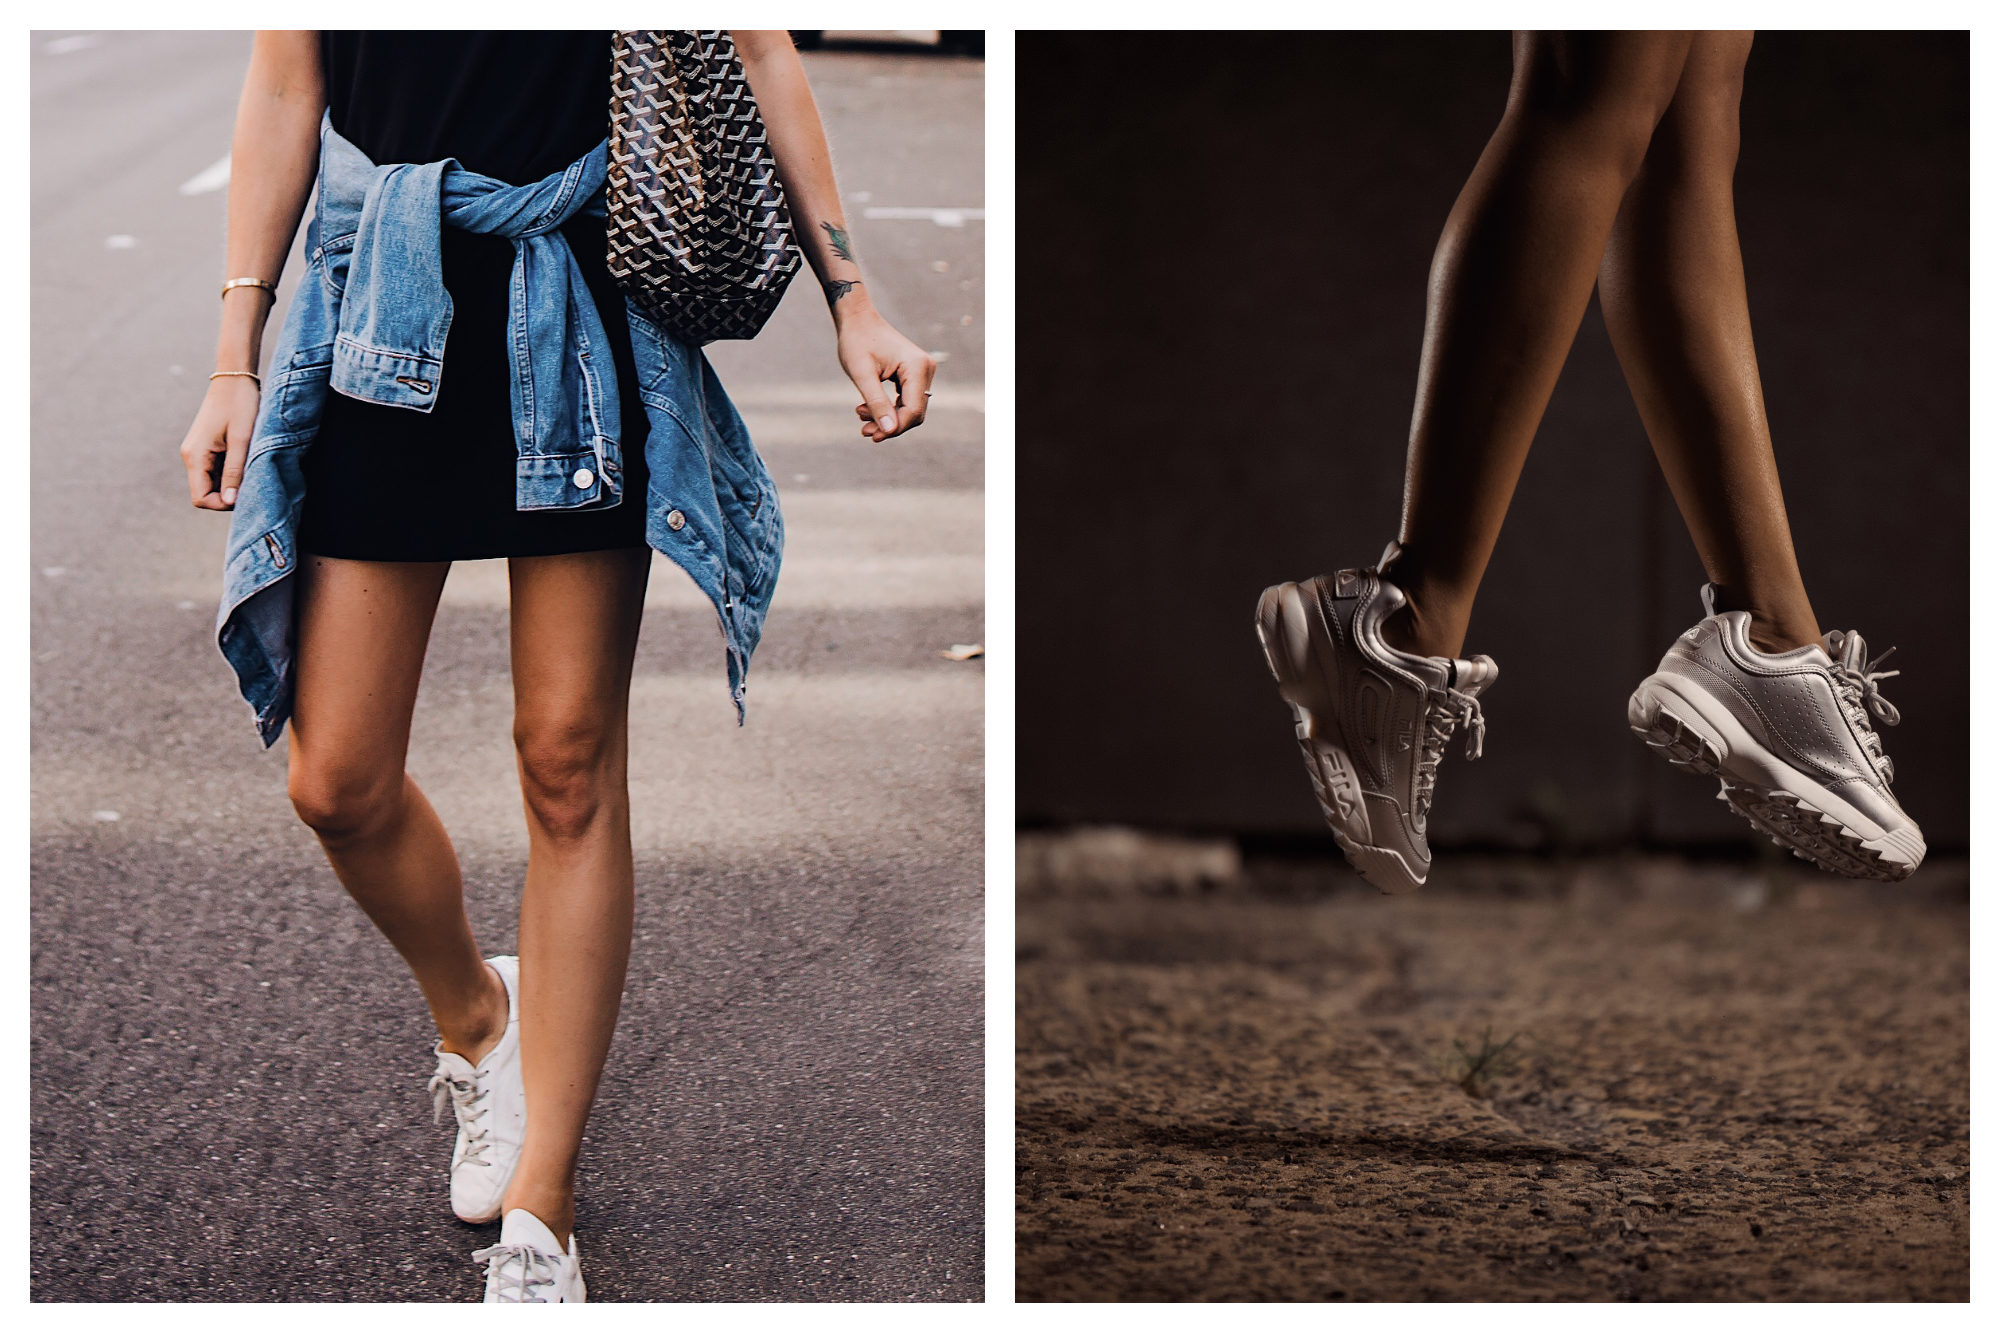 A woman in summer wearing a Goyard bag in Paris (left). A woman jumping up, only her legs and white 'dad shoe' trainers are visible (right).